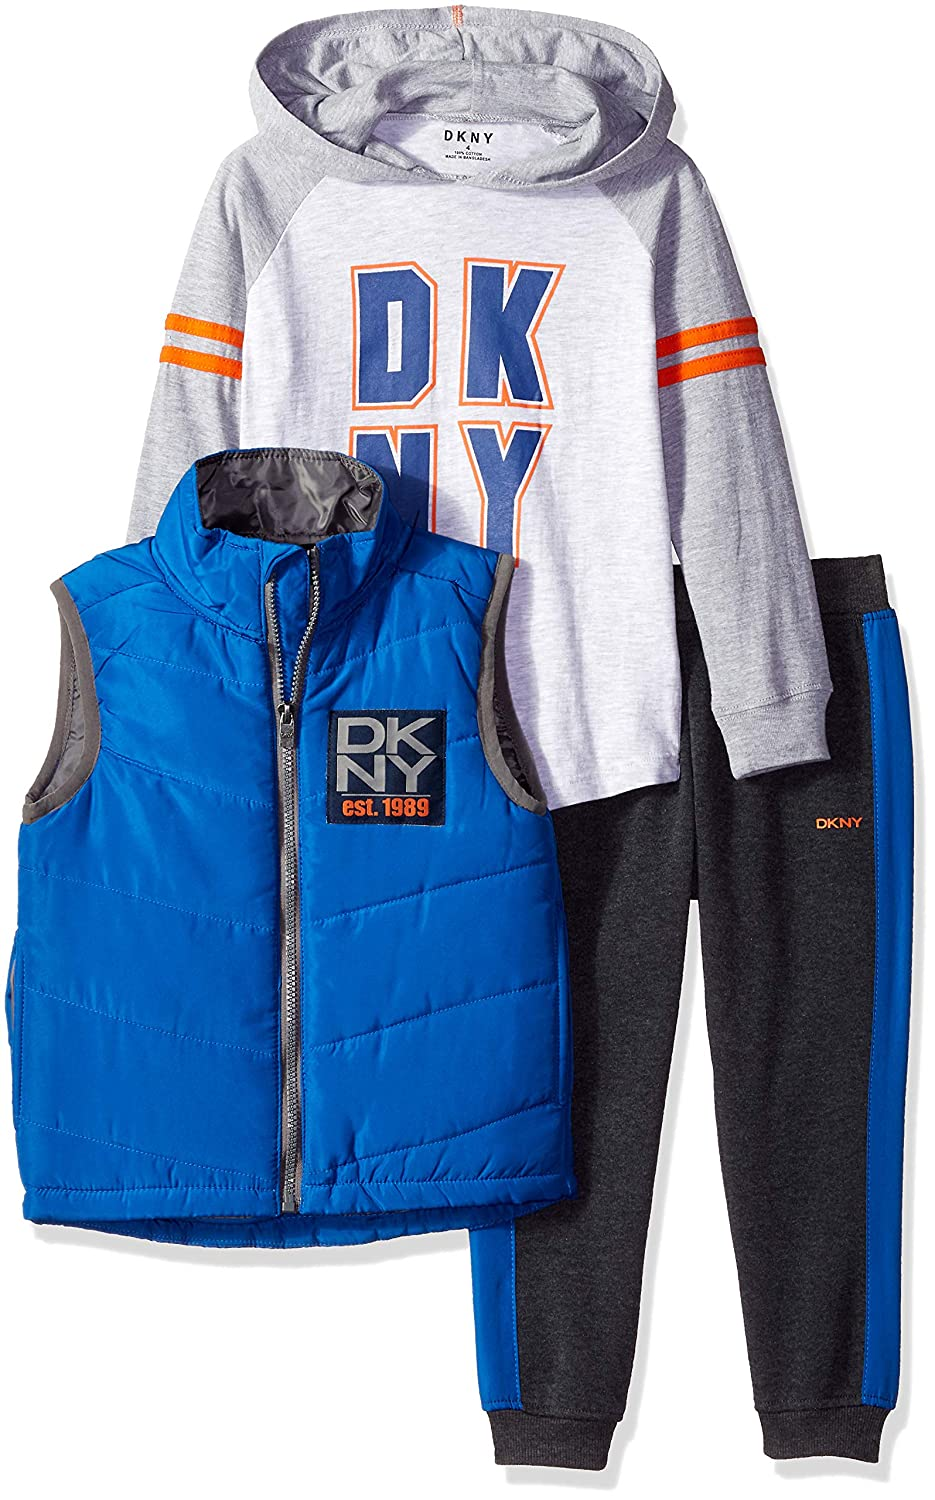 DKNY Boys' North View Avenue Puffer Vest, Hoodie and Fleece Jog Pant, DB_0451